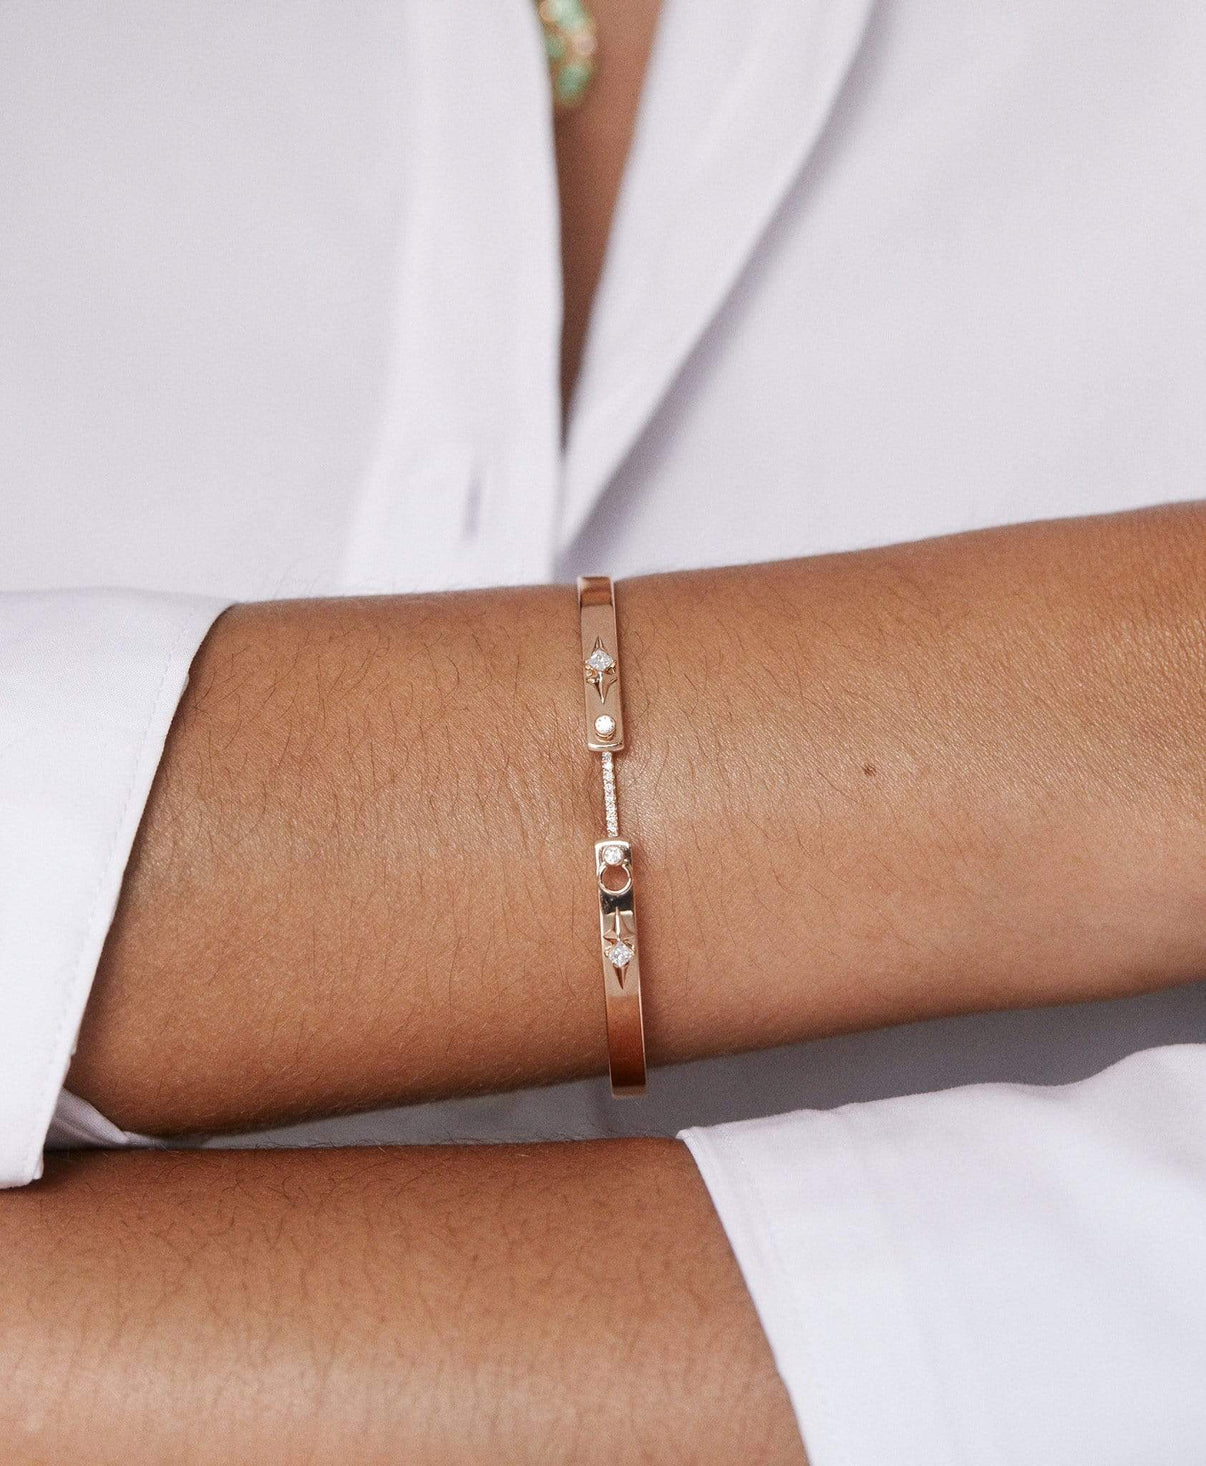 Rêverie Mood Bangle: Discover Luxury Fine Jewelry | Nouvel Heritage